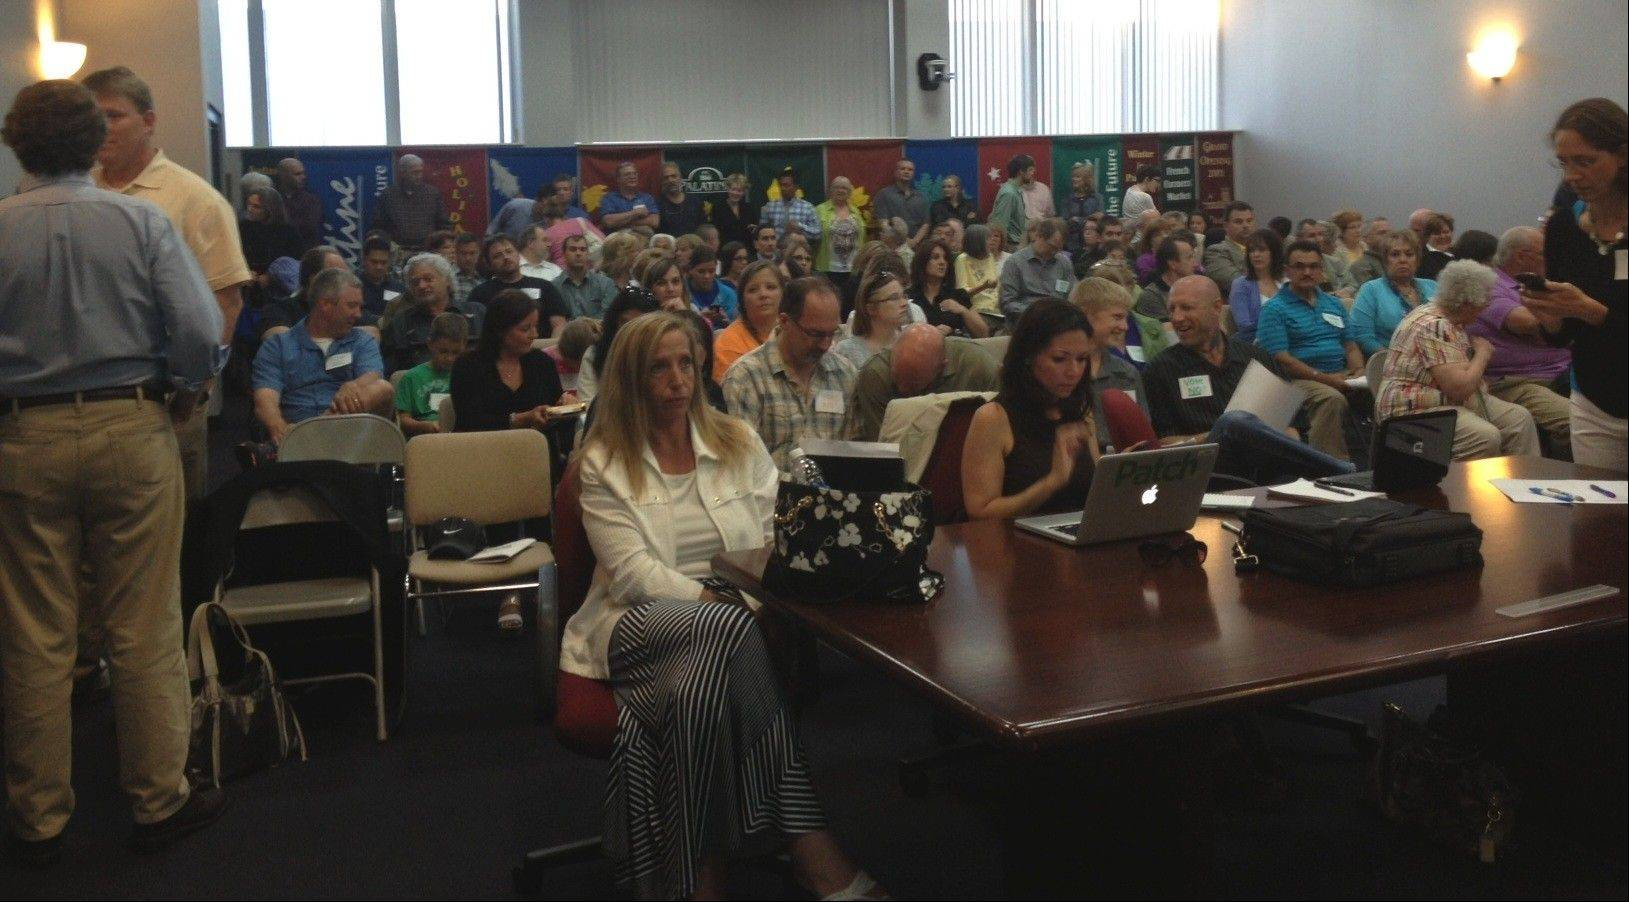 The first formal hearing for a permanent supportive housing facility proposed near downtown Palatine drew an overflow and passionate crowd at the plan commission meeting Tuesday.